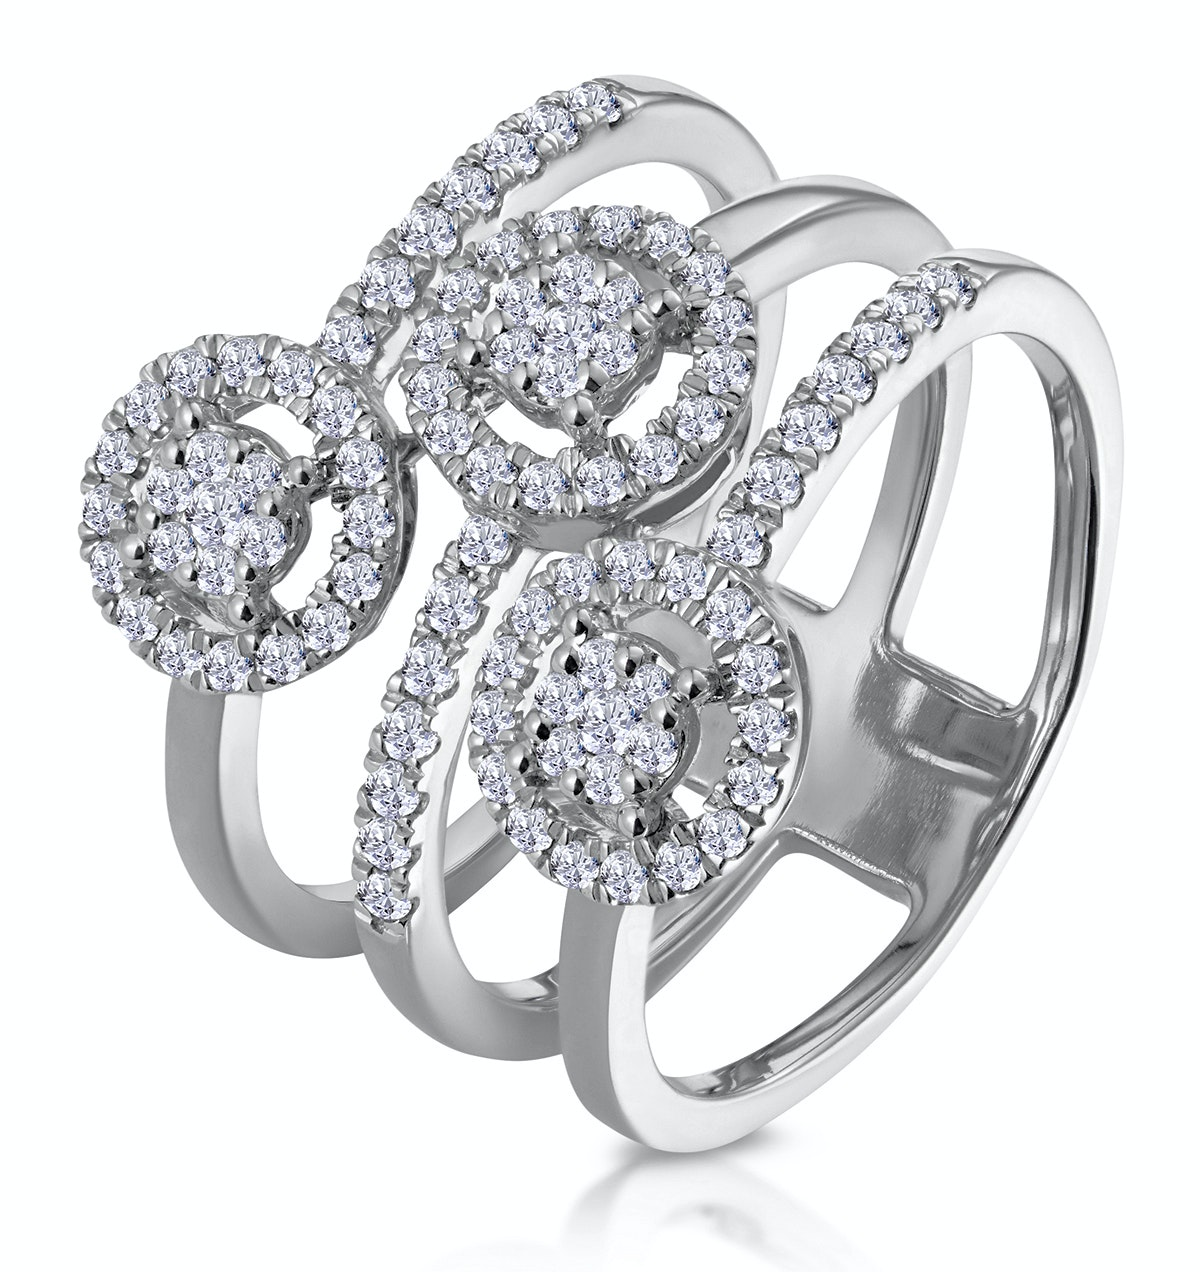 0.55ct Asteria Collection Wide Diamond Halo Ring in 18K White Gold